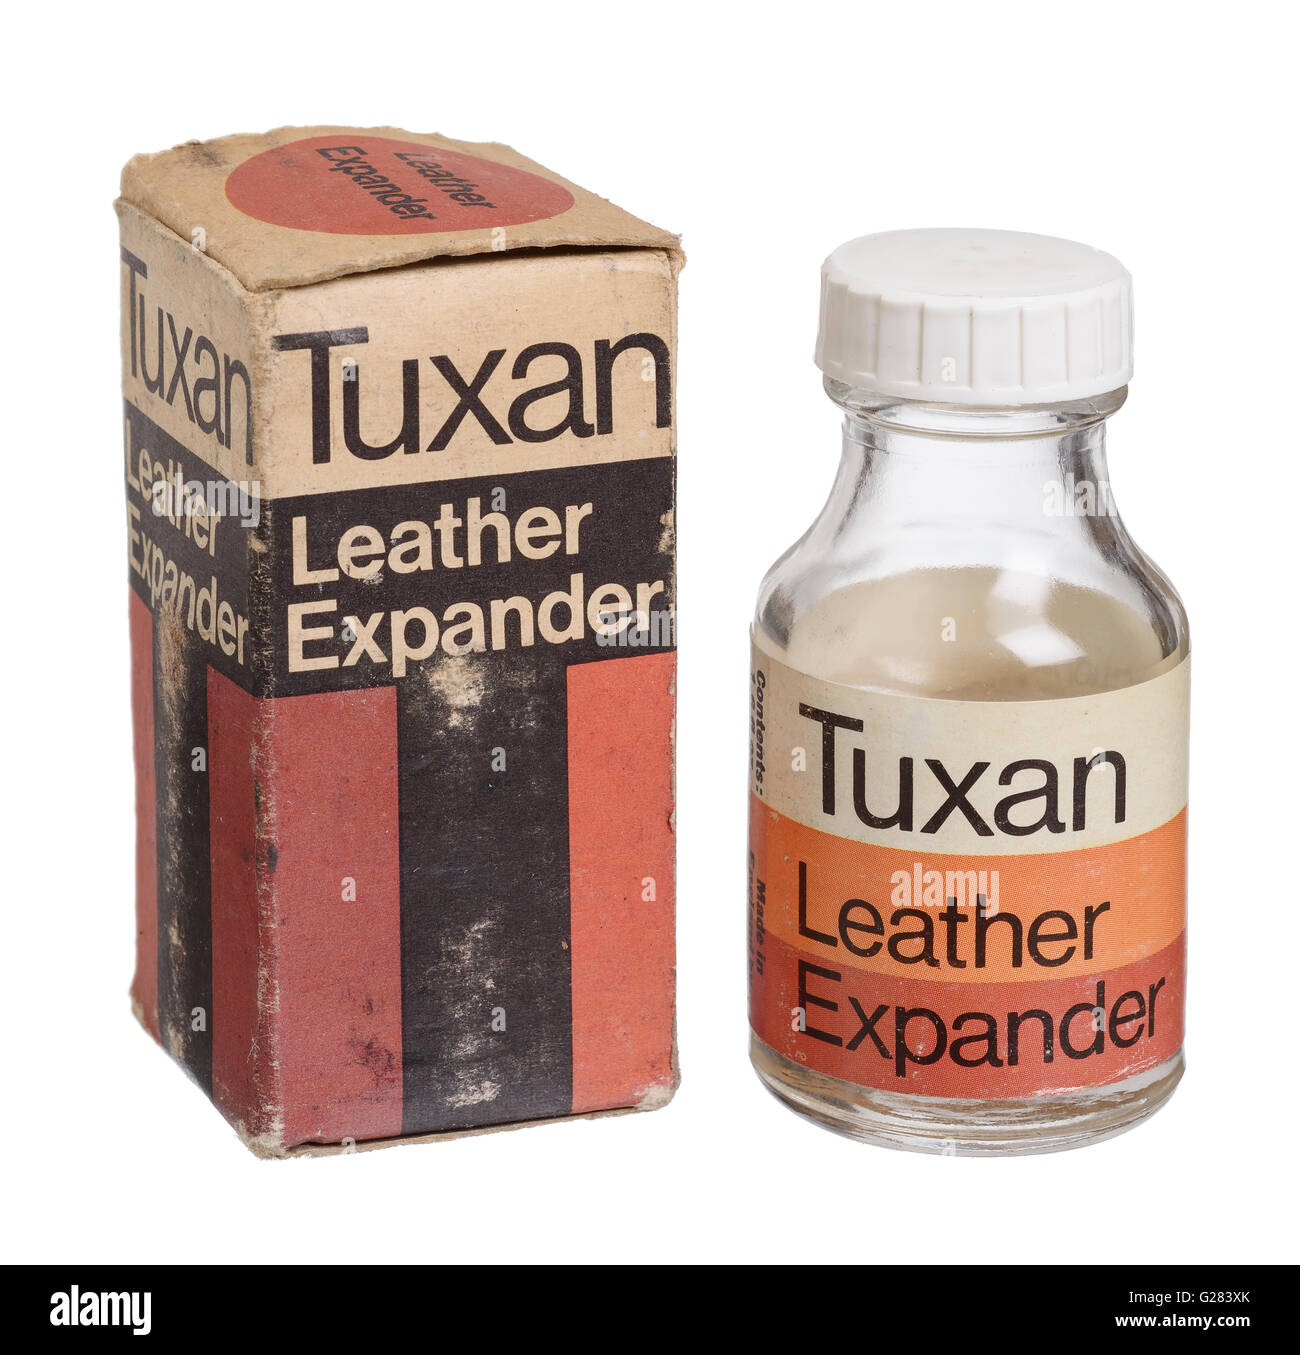 Old vintage bottle and box of Tuxan Leather Expander - Stock Image